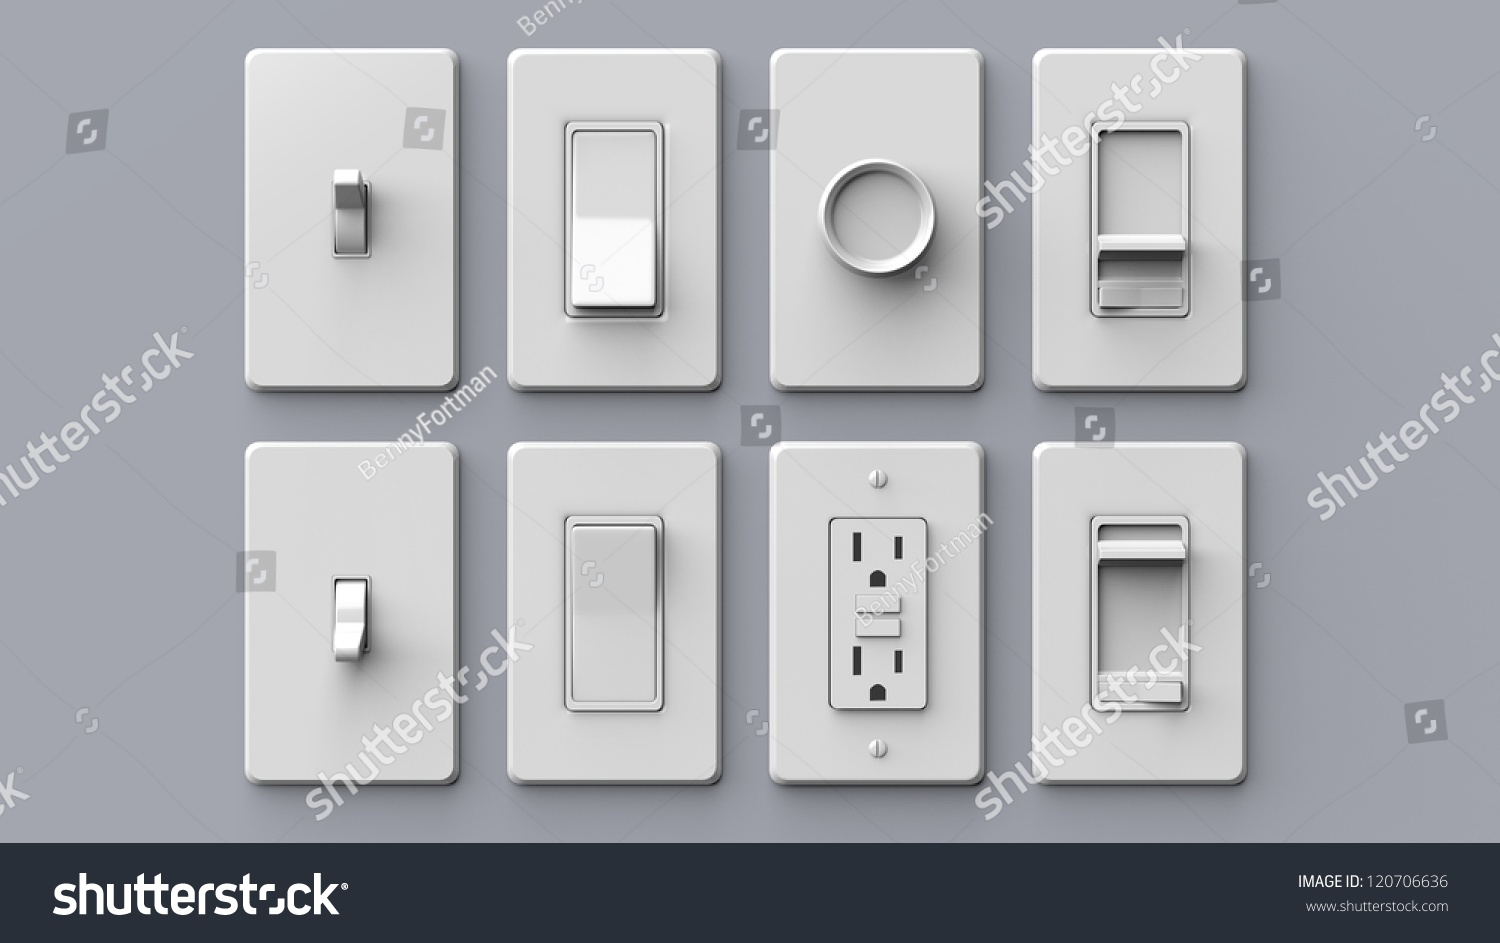 Royalty Free Stock Illustration of Common Household Electrical ...